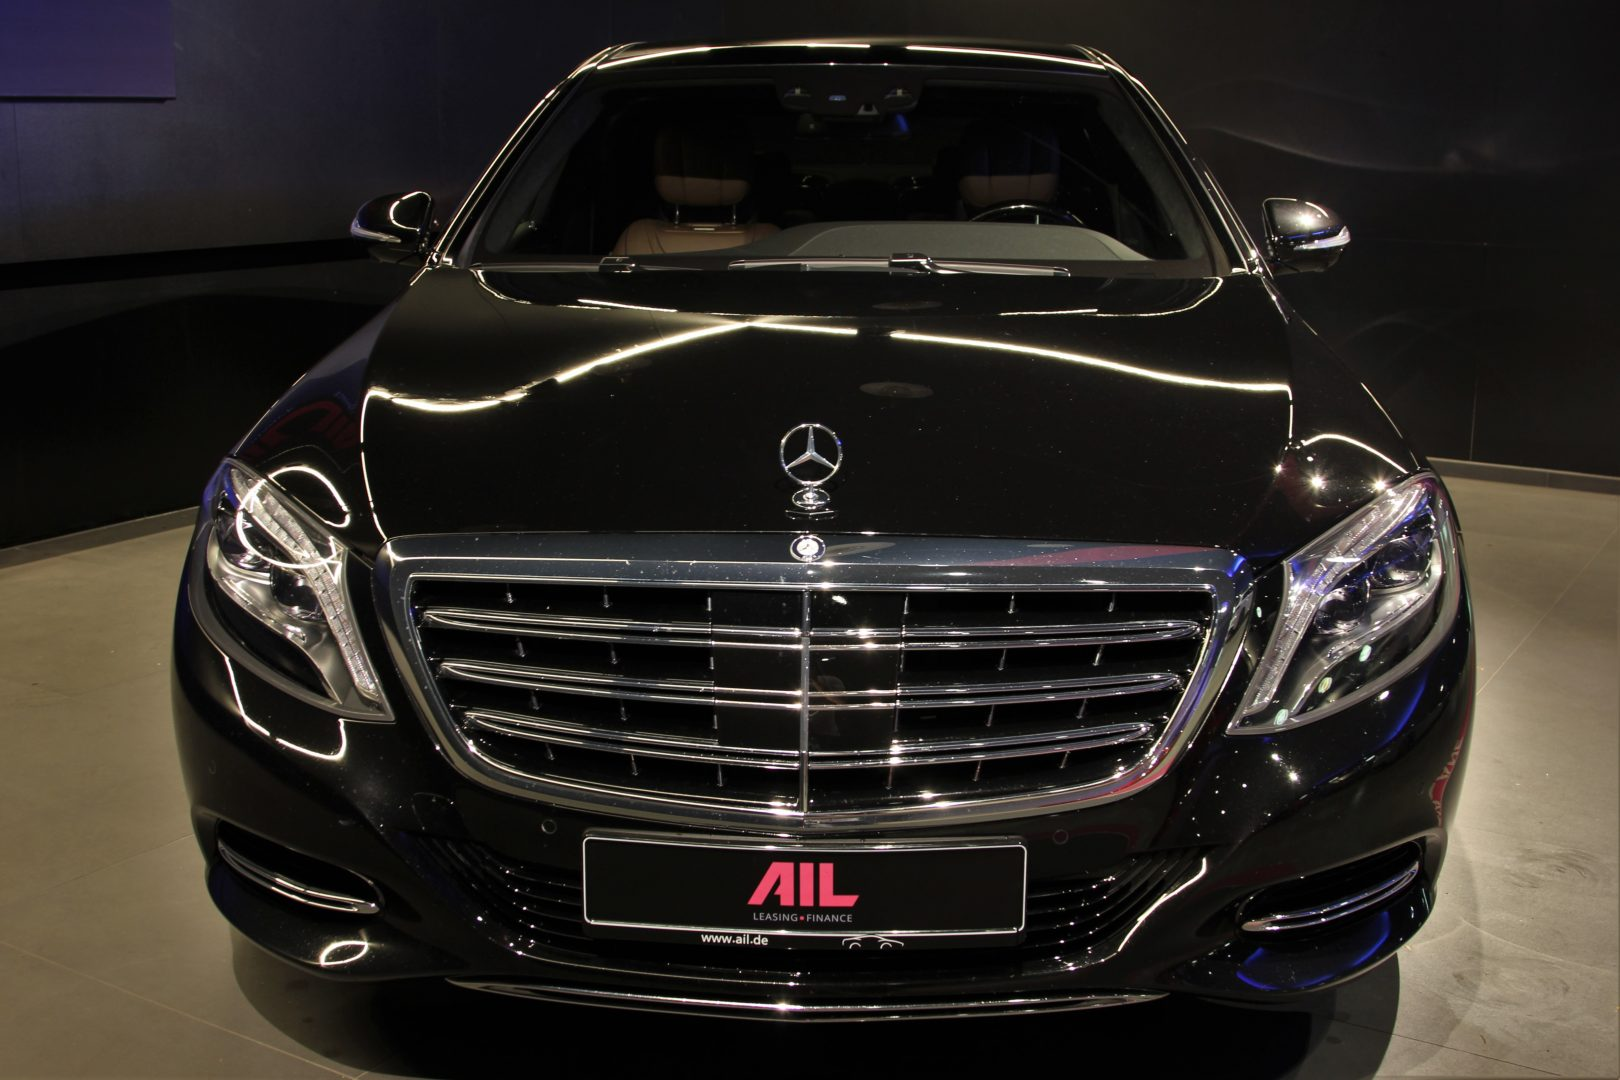 AIL Mercedes-Benz S 500 Maybach First-Class Fond RSE 2